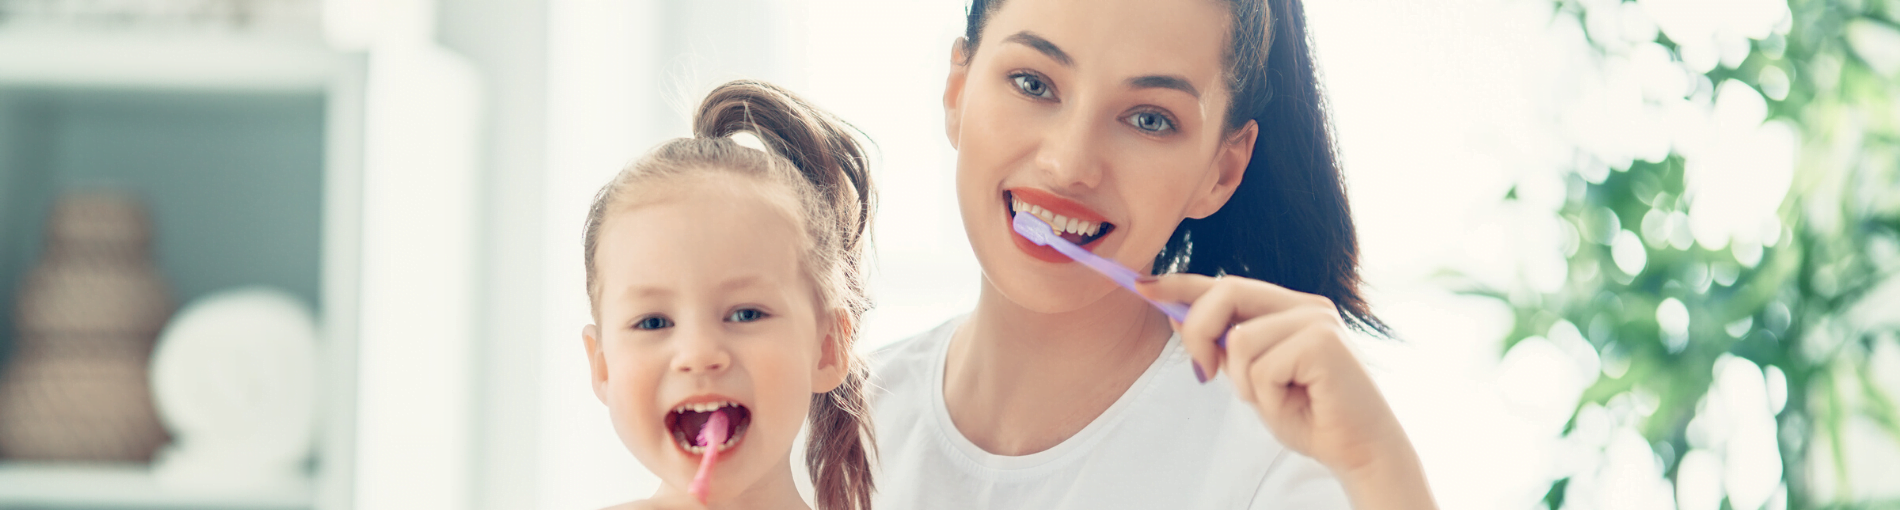 How to protect your oral health during COVID-19